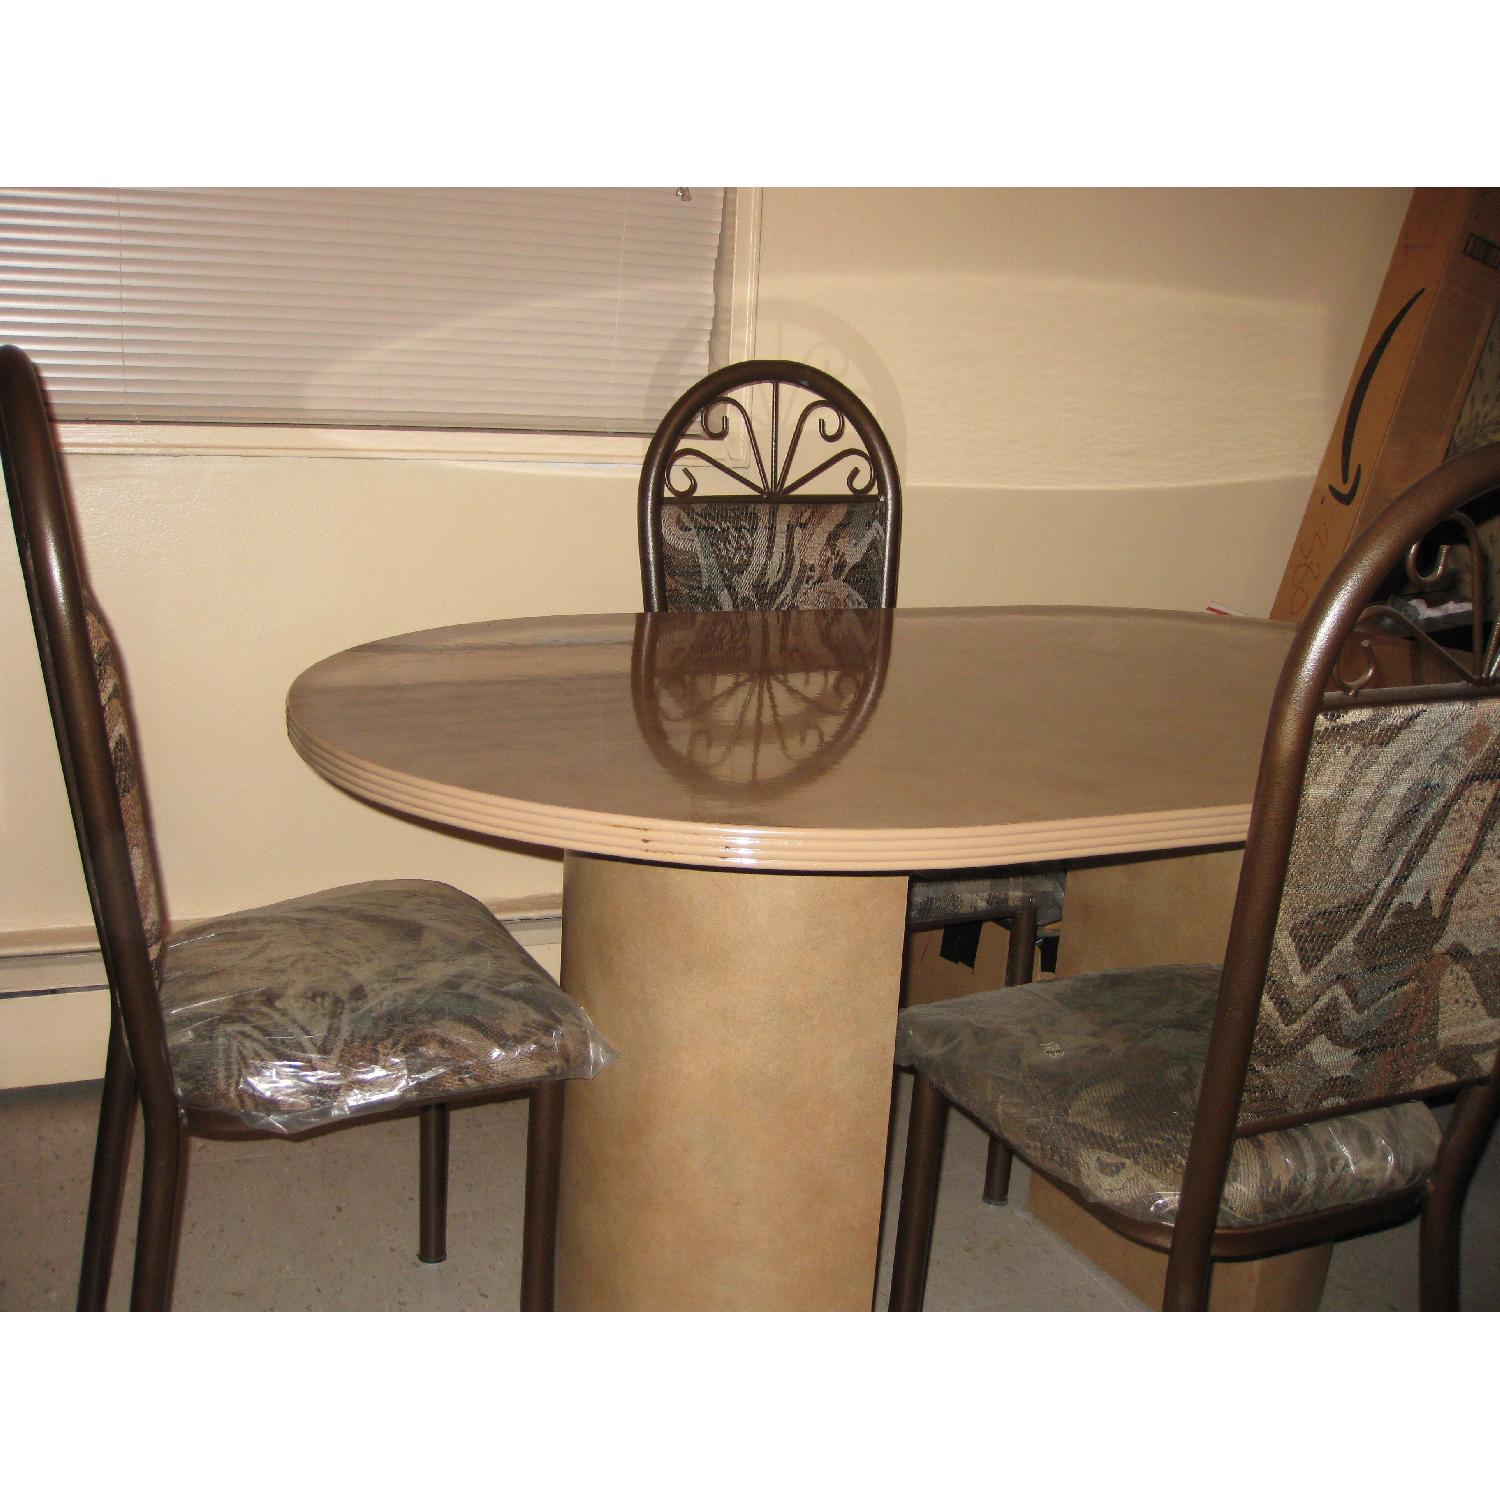 Ethan Allen Granite Marble Oval Dining Table in Brownish Tan-1